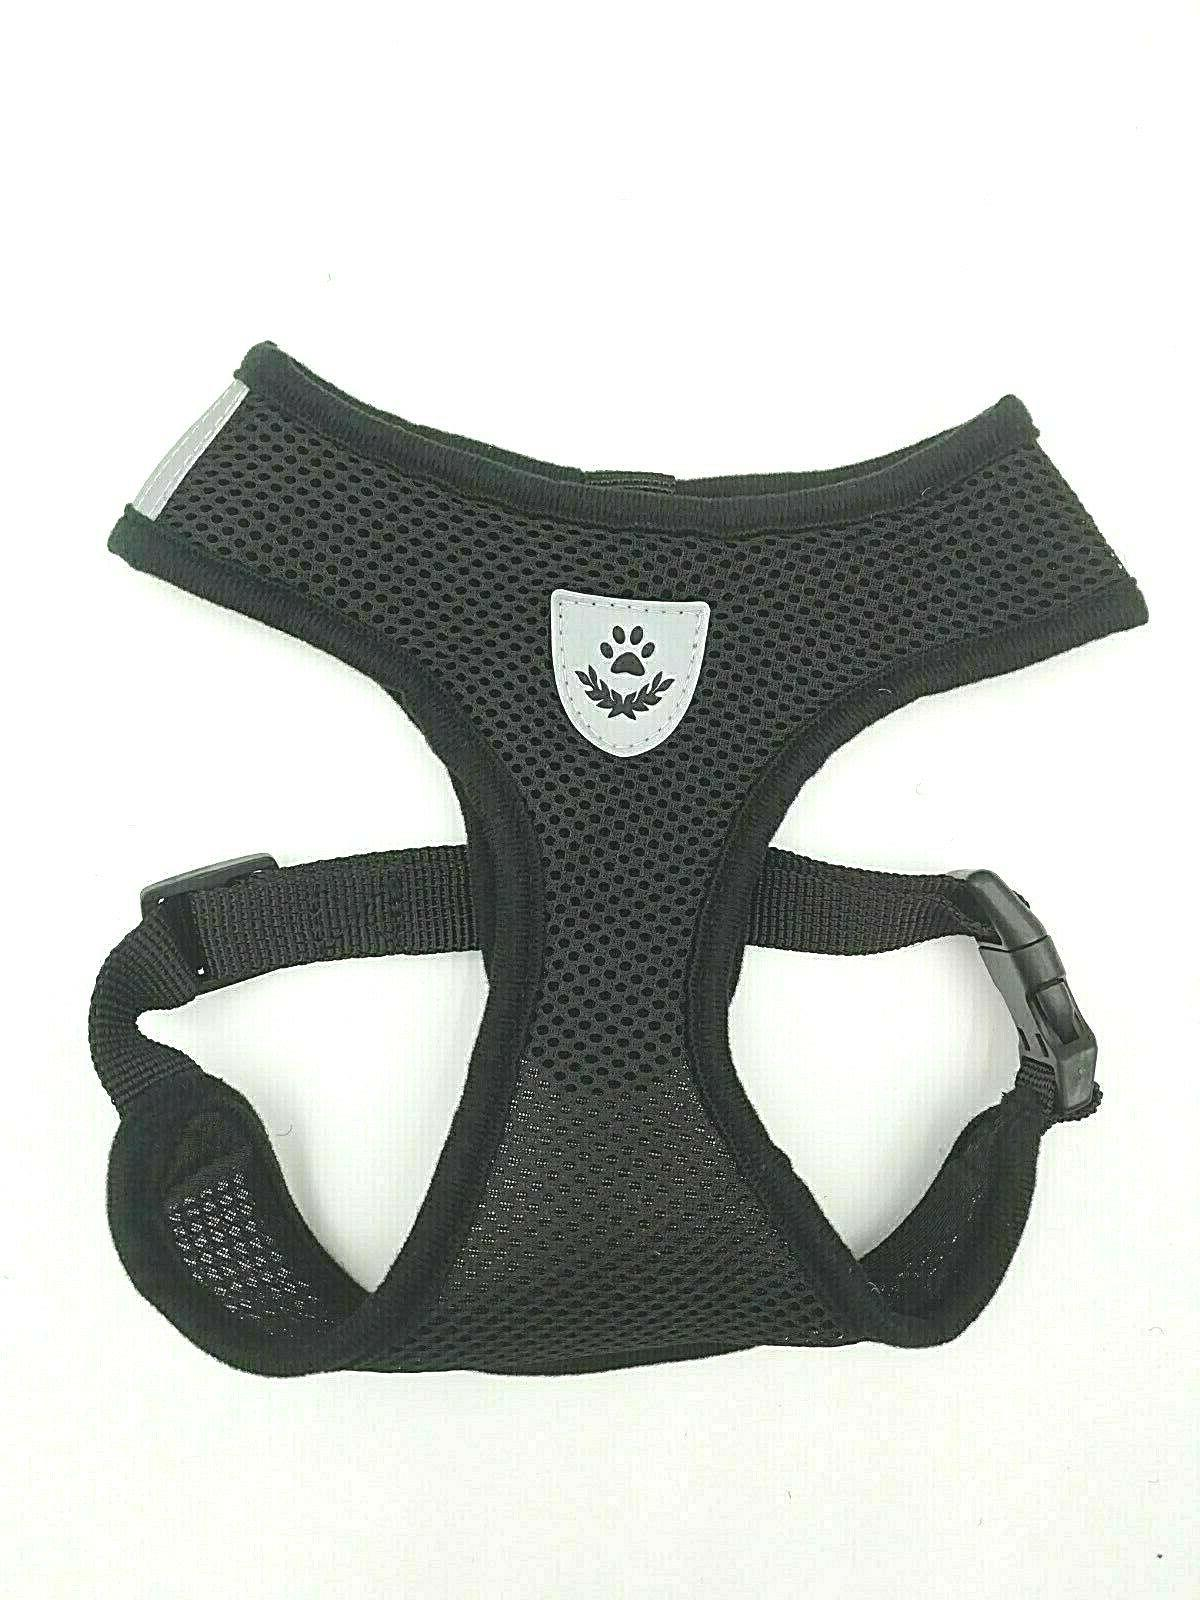 Pet Control SMALL Dog Harness Soft DOUBLE Walk Collar Vest